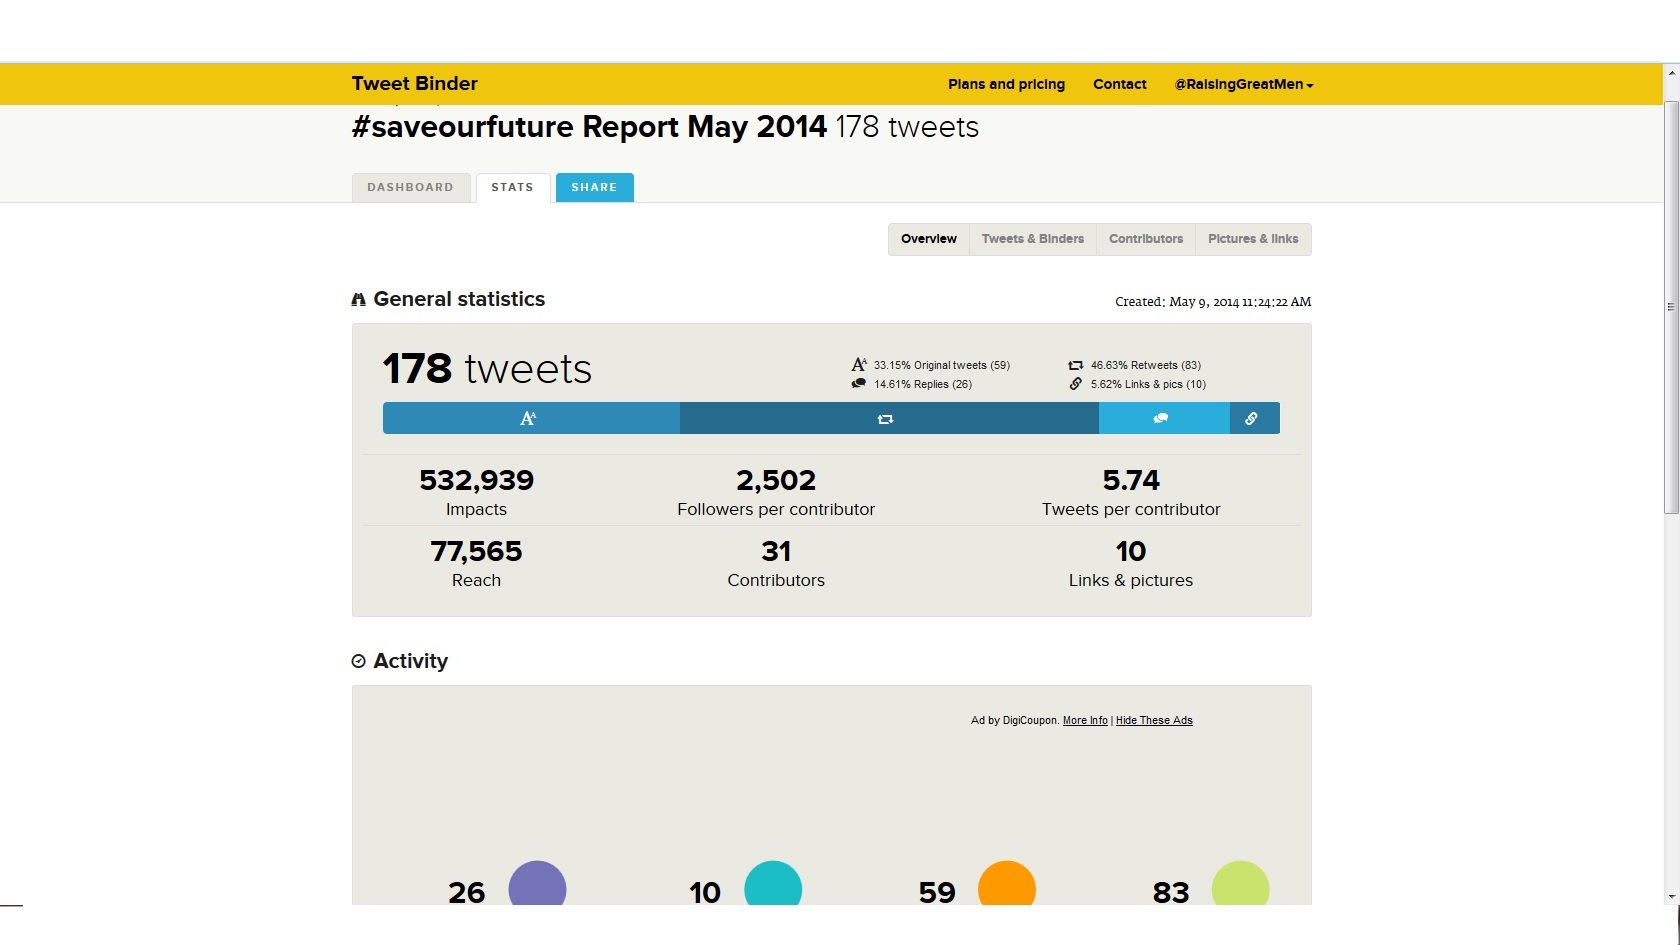 Here is our initial report from our Twitter Chat. We had over 530,000 imprints with more than 77,000 reach. This will grow as we double hashtag the Nigeria situation as both  #SaveOurFuture    #BringBackOurGirls  (#SaveOurFuture distinguishes our conversation from the other #BringBackOurGirls social media activists). Drums keep drummin'!!! Let's do this!